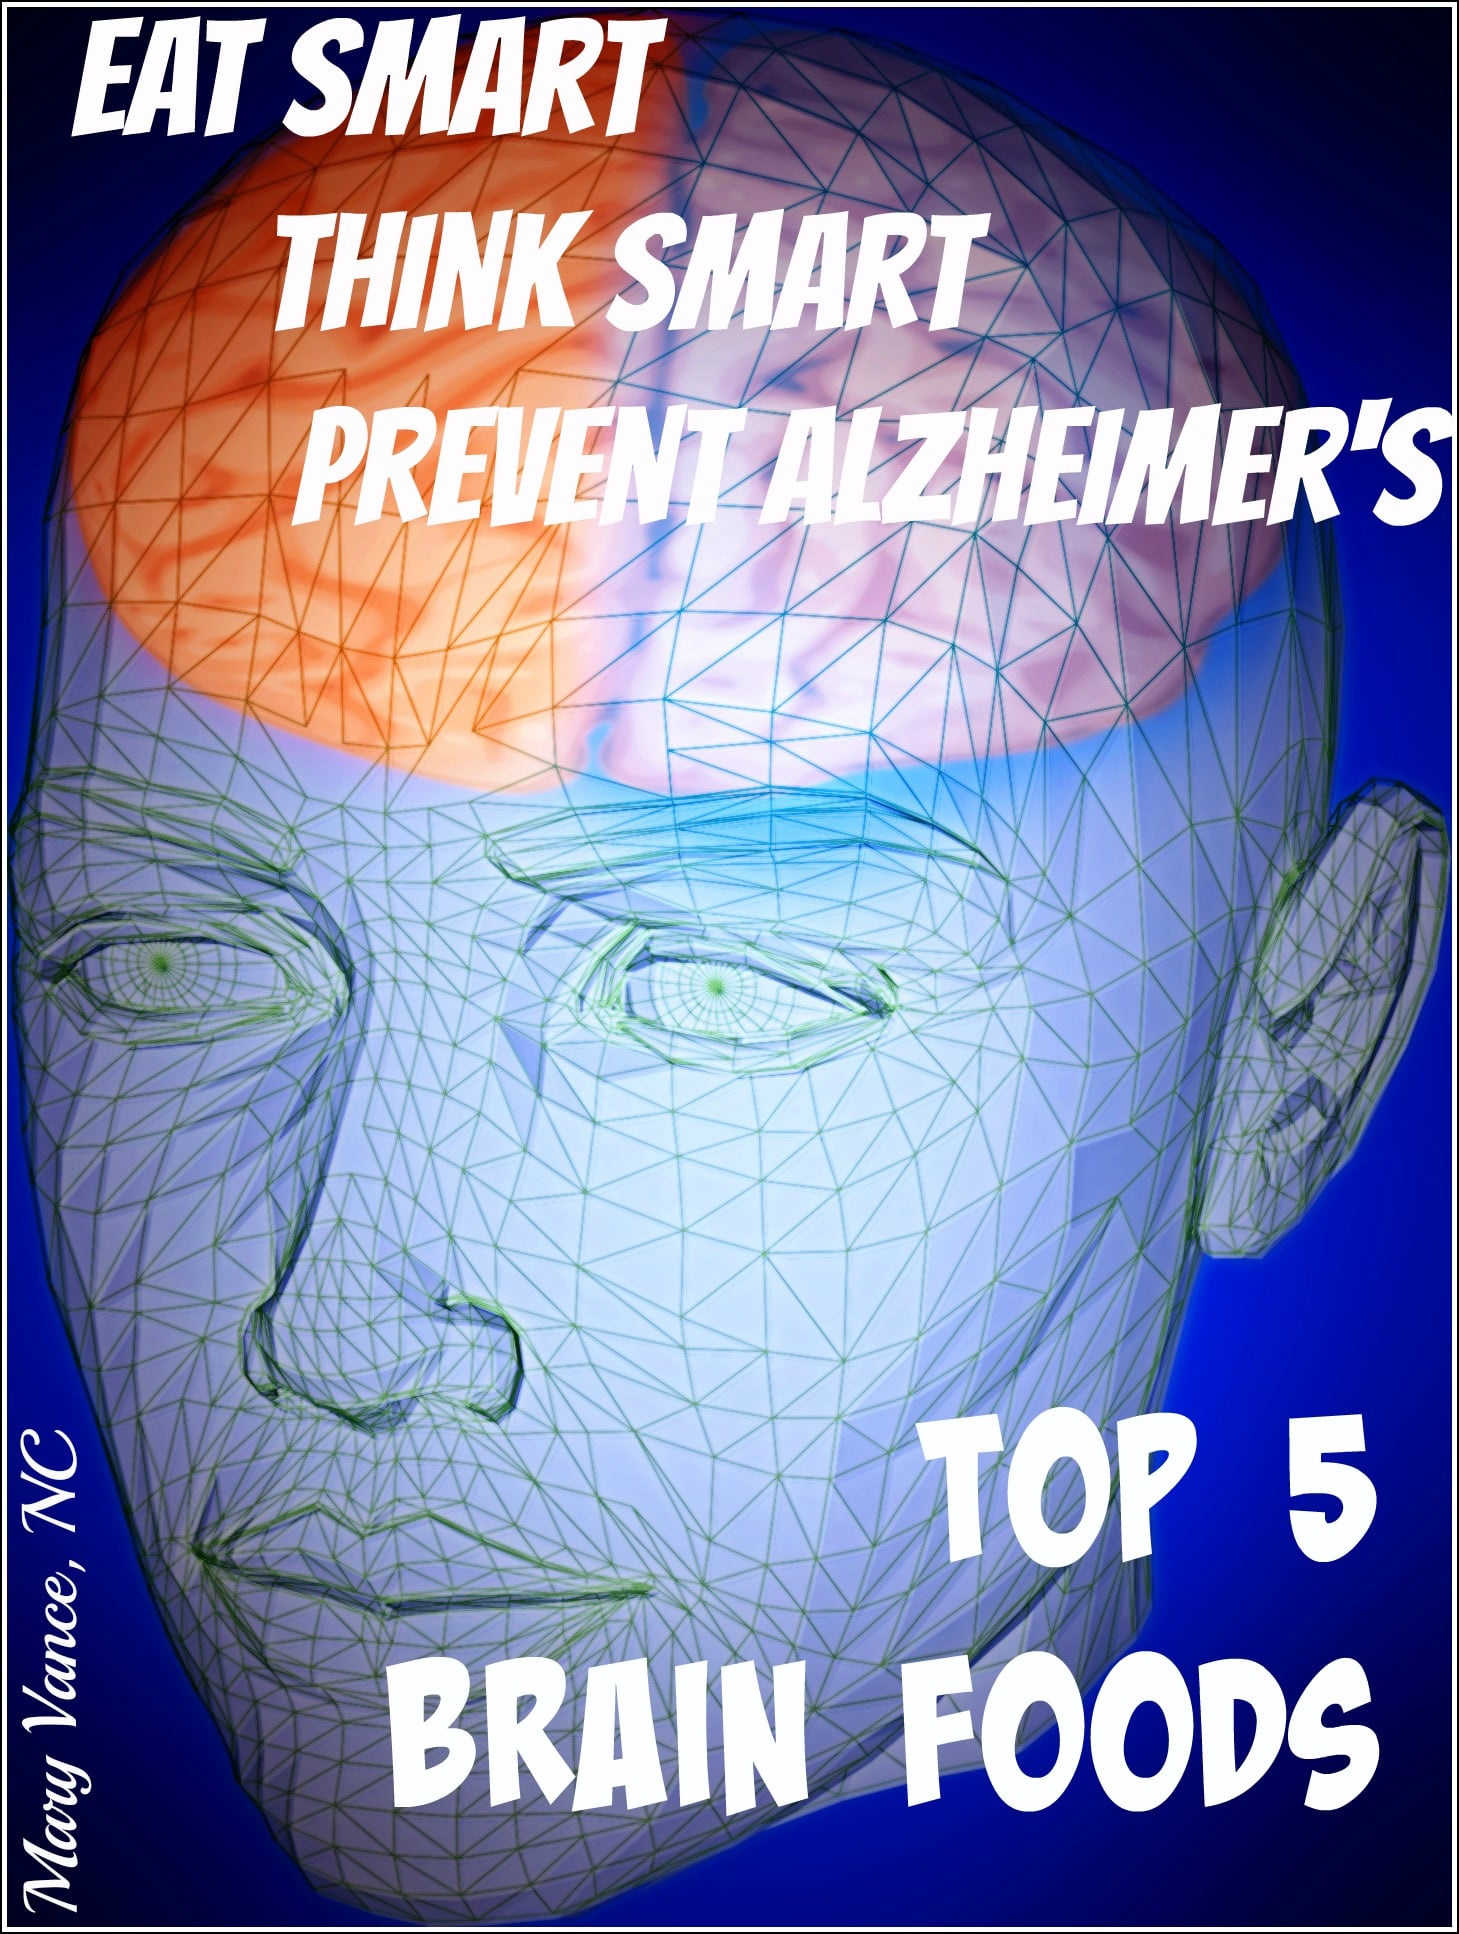 Eat Smart, Think Smart: Top 5 Brain Foods--Mary Vance, NC